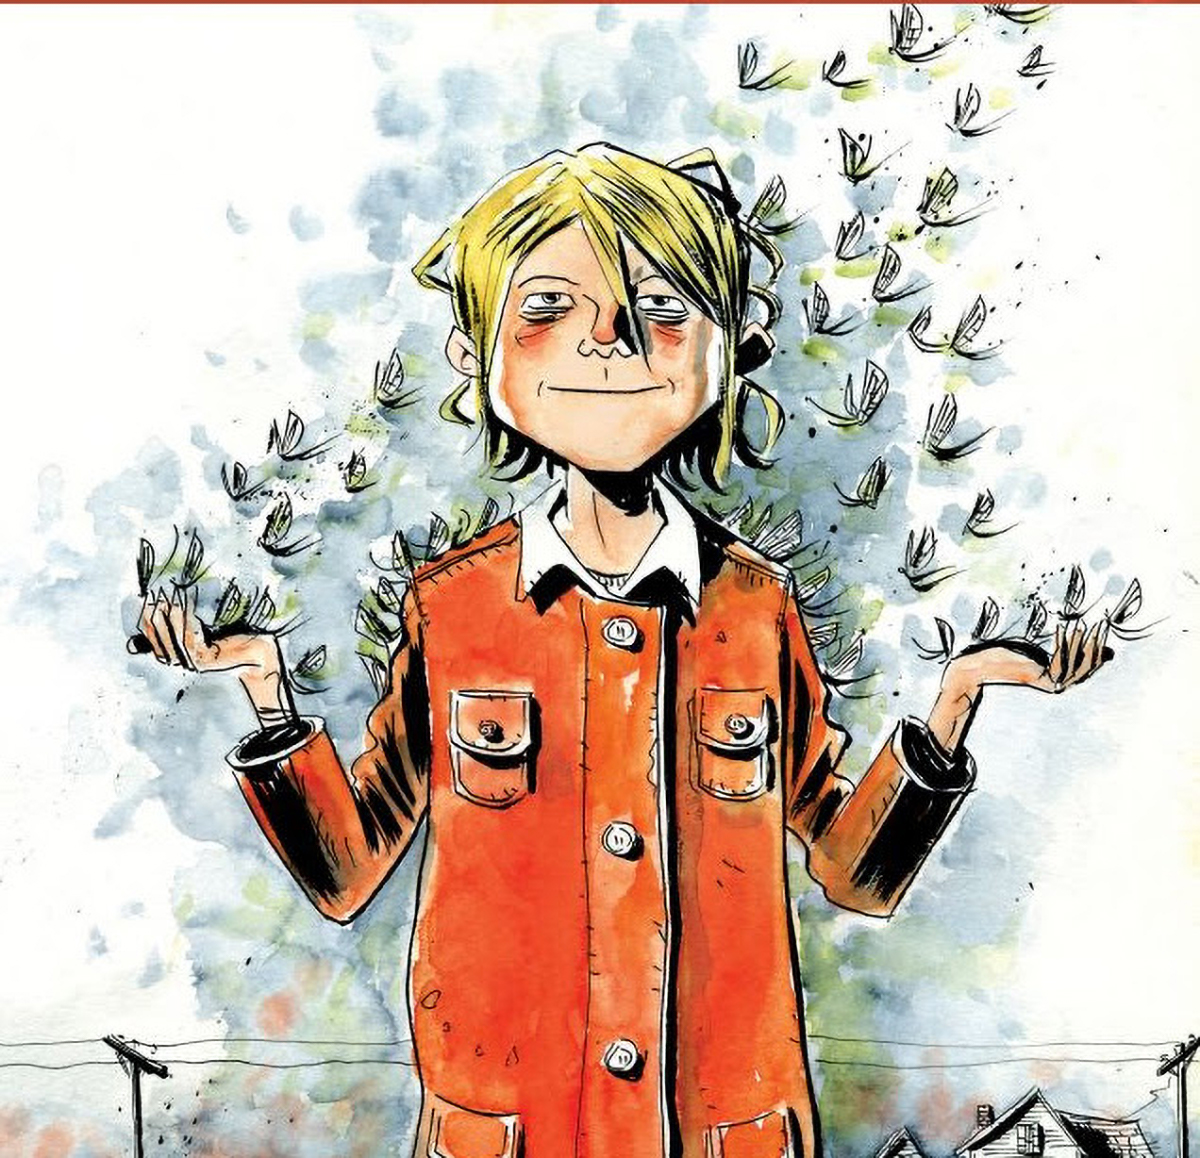 Jeff Lemire announces move to Substack, new series 'Fishflies' starting next week